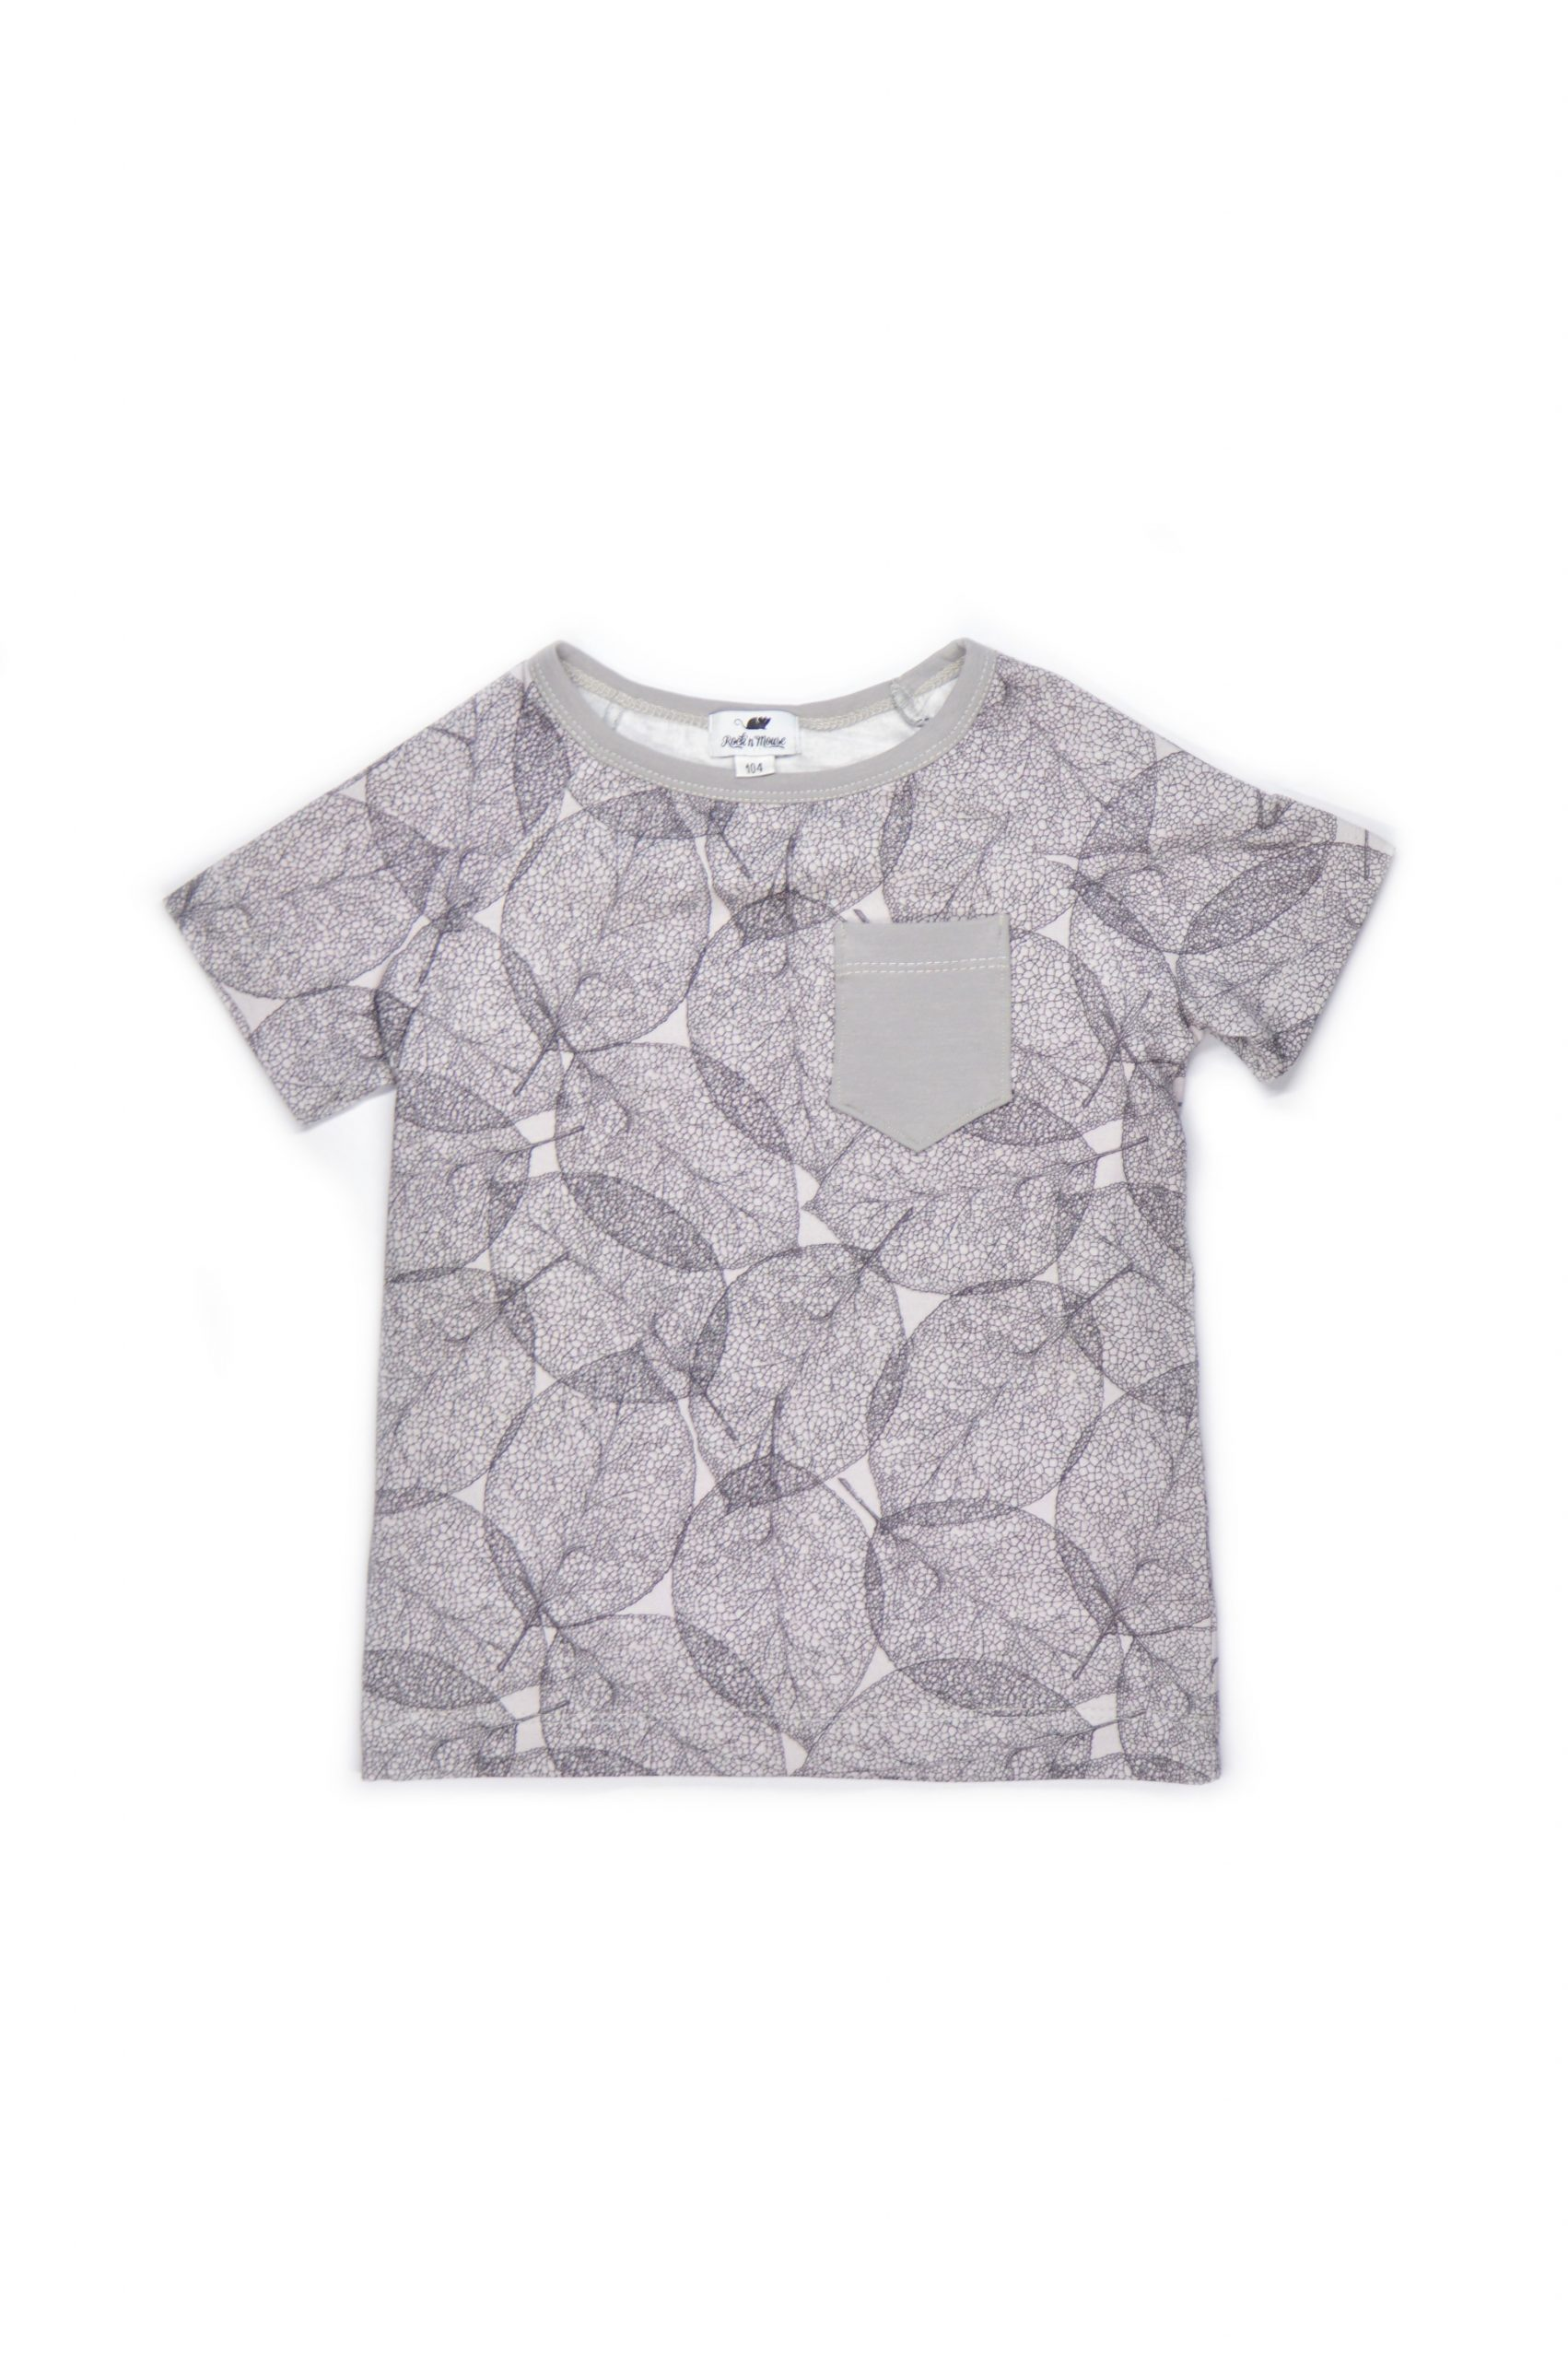 Unisex Dark leaf T-shirt for kids - toddler and baby boys and girls